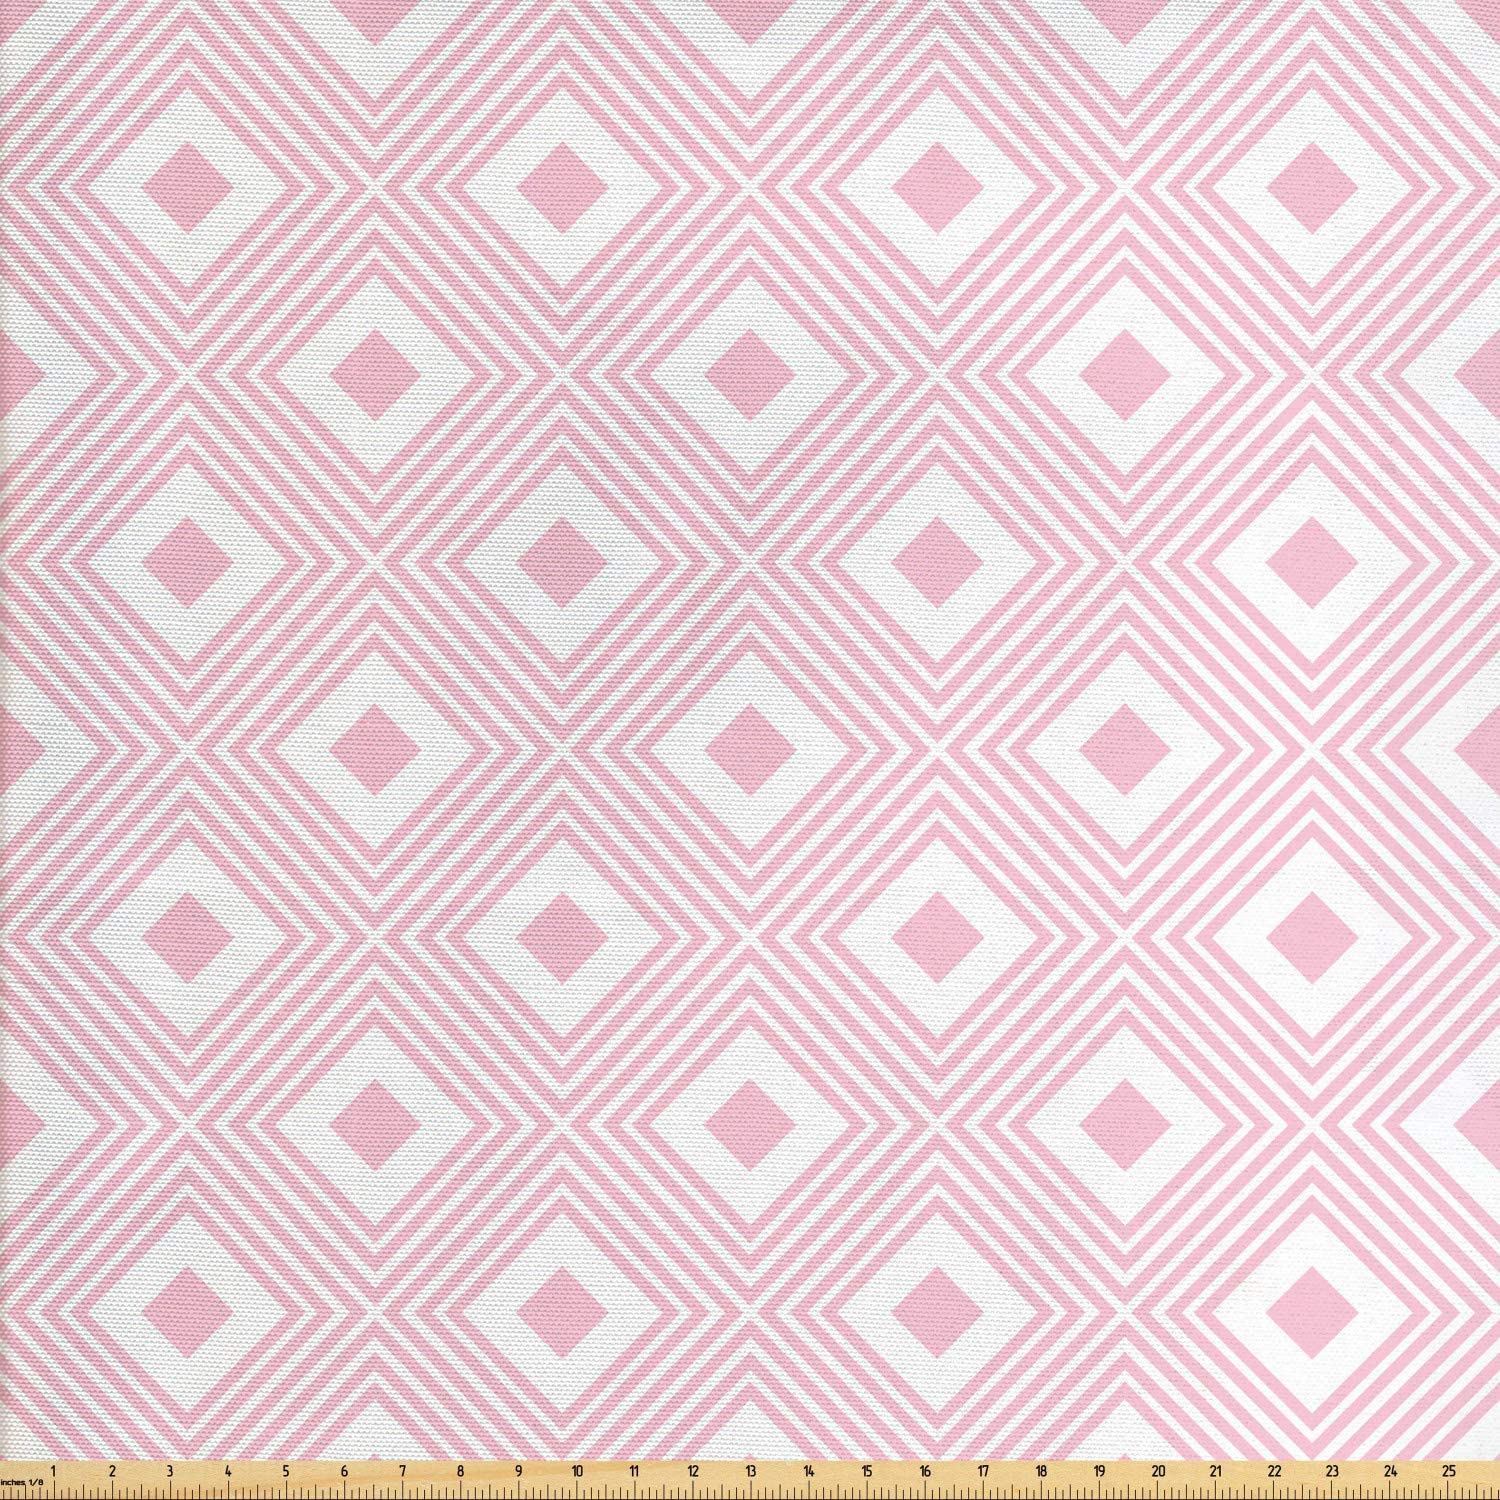 Ambesonne Geometric Rhombus Fabric by The Yard, Pastel Nested Shapes in Soft Colors Continuing Illustration, Decorative Fabric for Upholstery and Home Accents, 1 Yard, Baby Pink and White